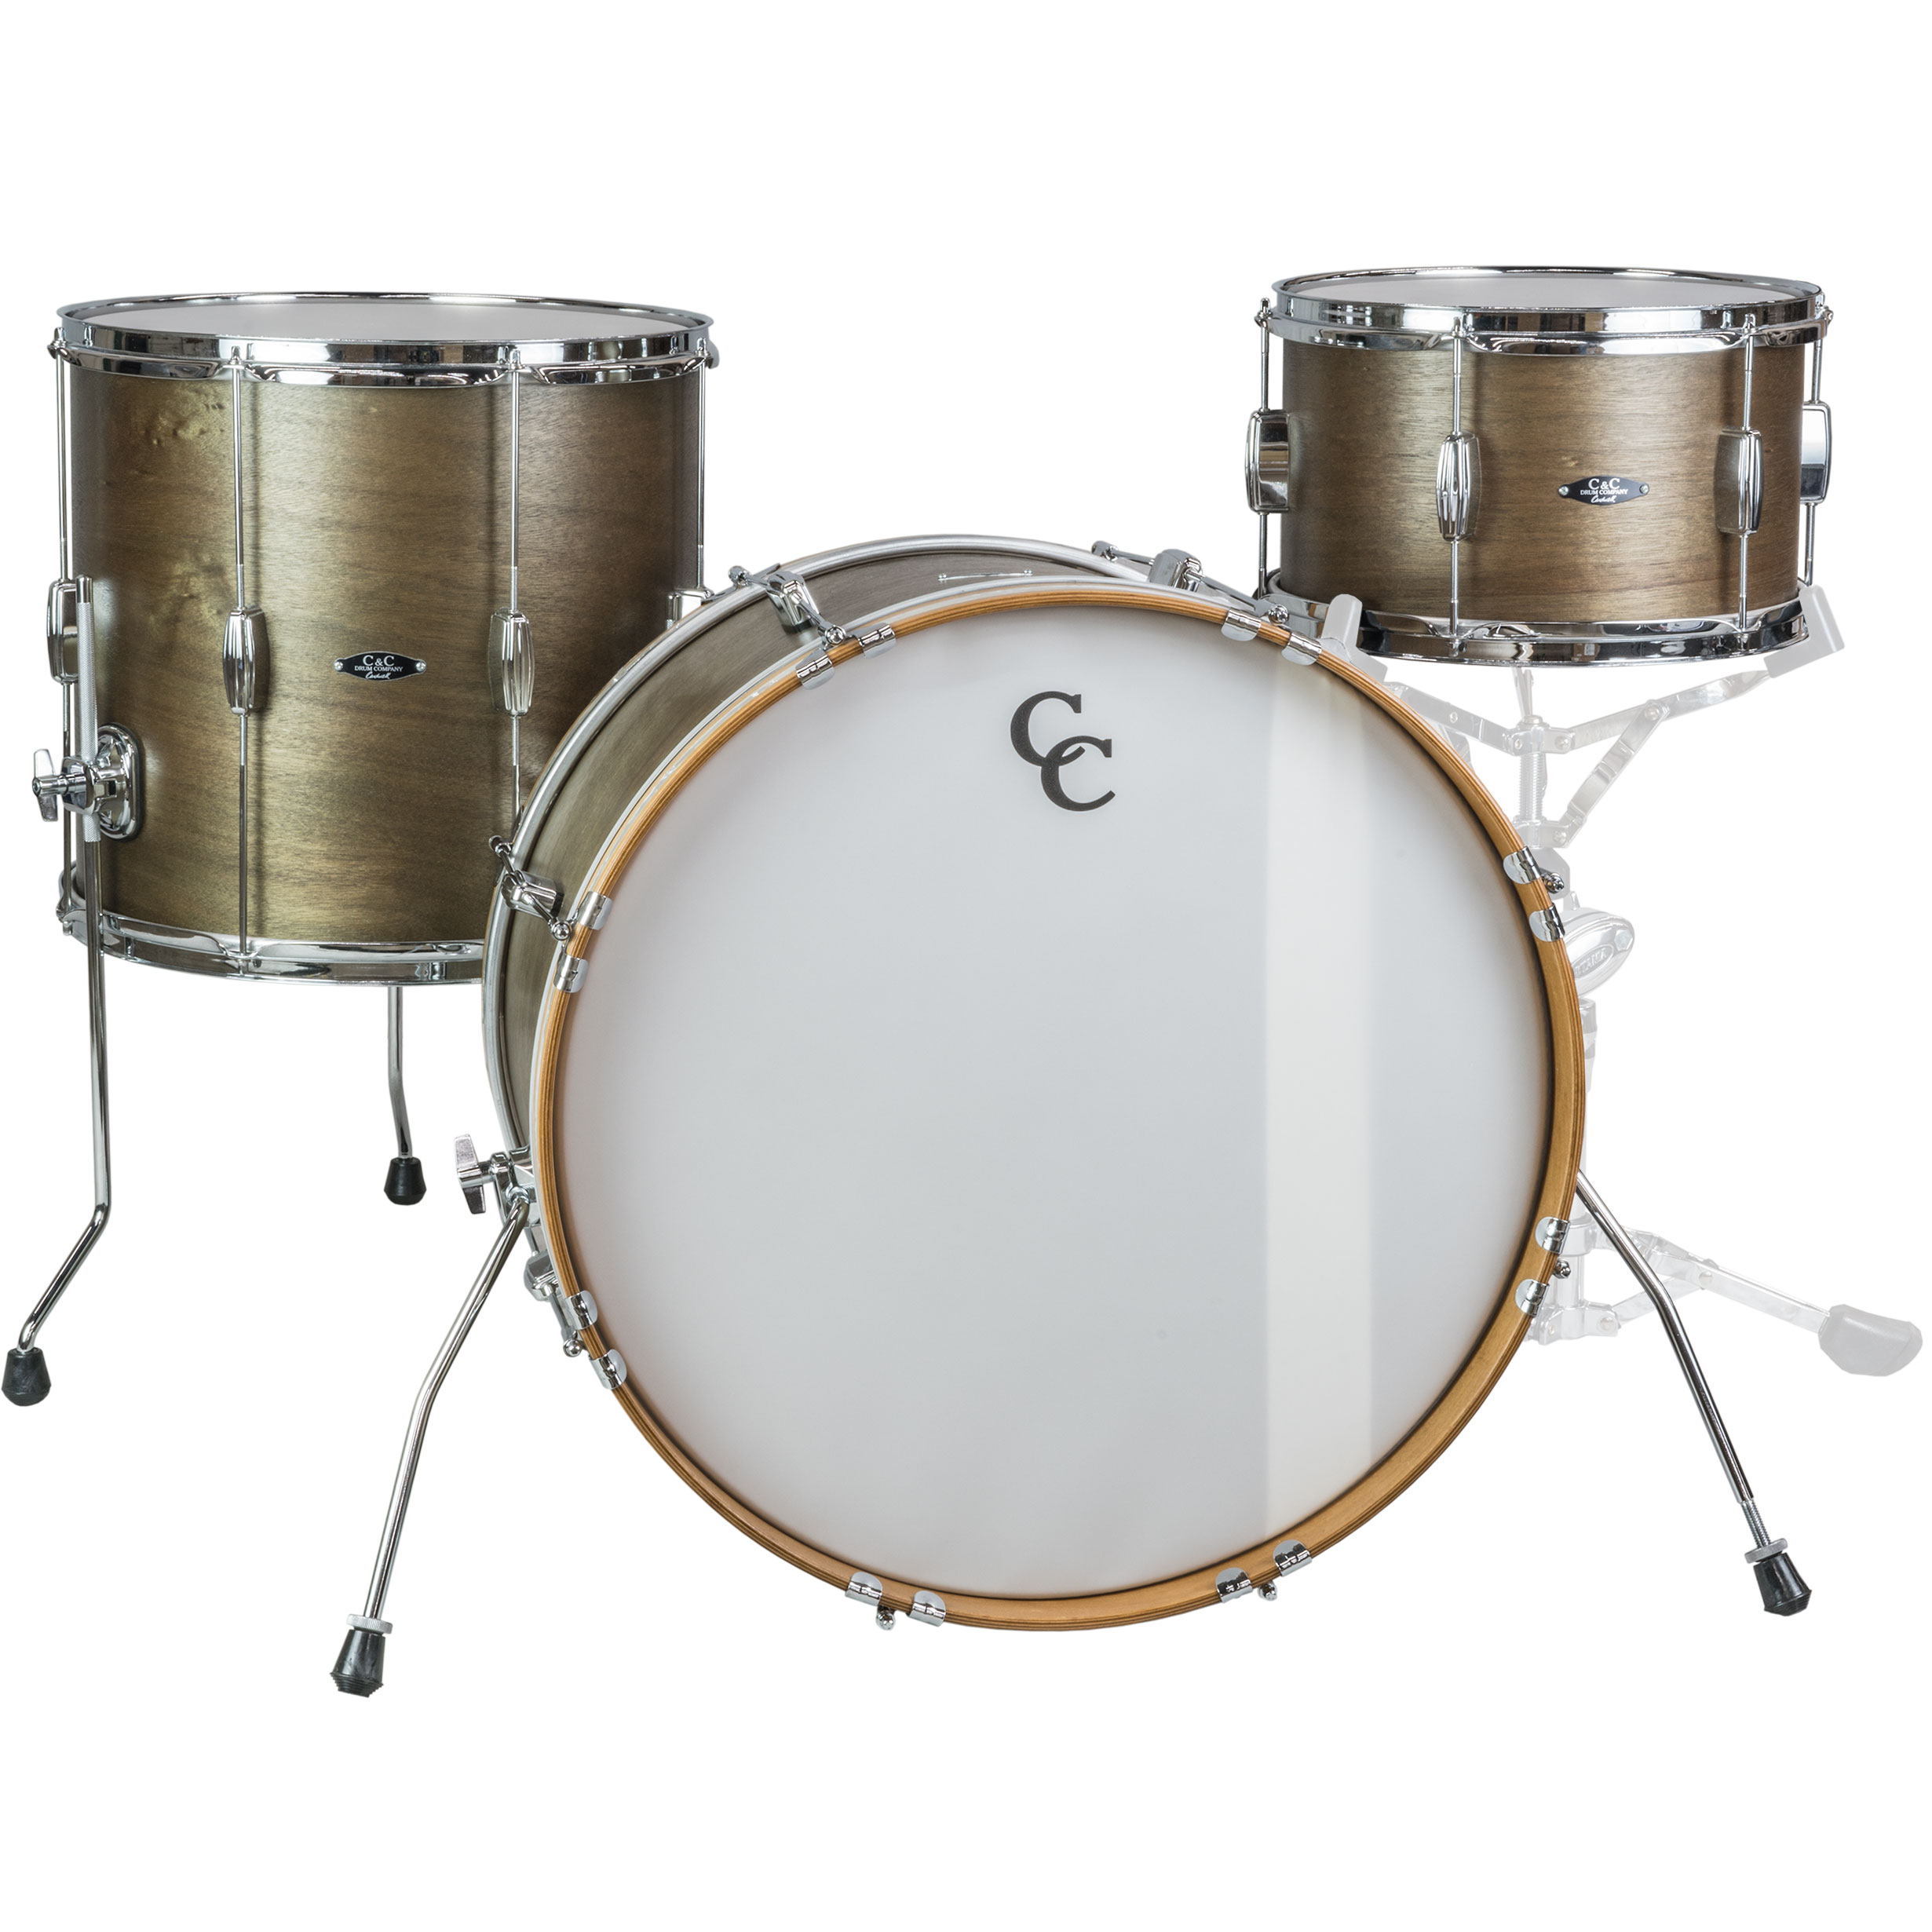 "C&C Drum Player Date I 3-Piece Big Beat Drum Set Shell Pack (22"" Bass, 13/16"" Toms) in Olive Drab Satin"